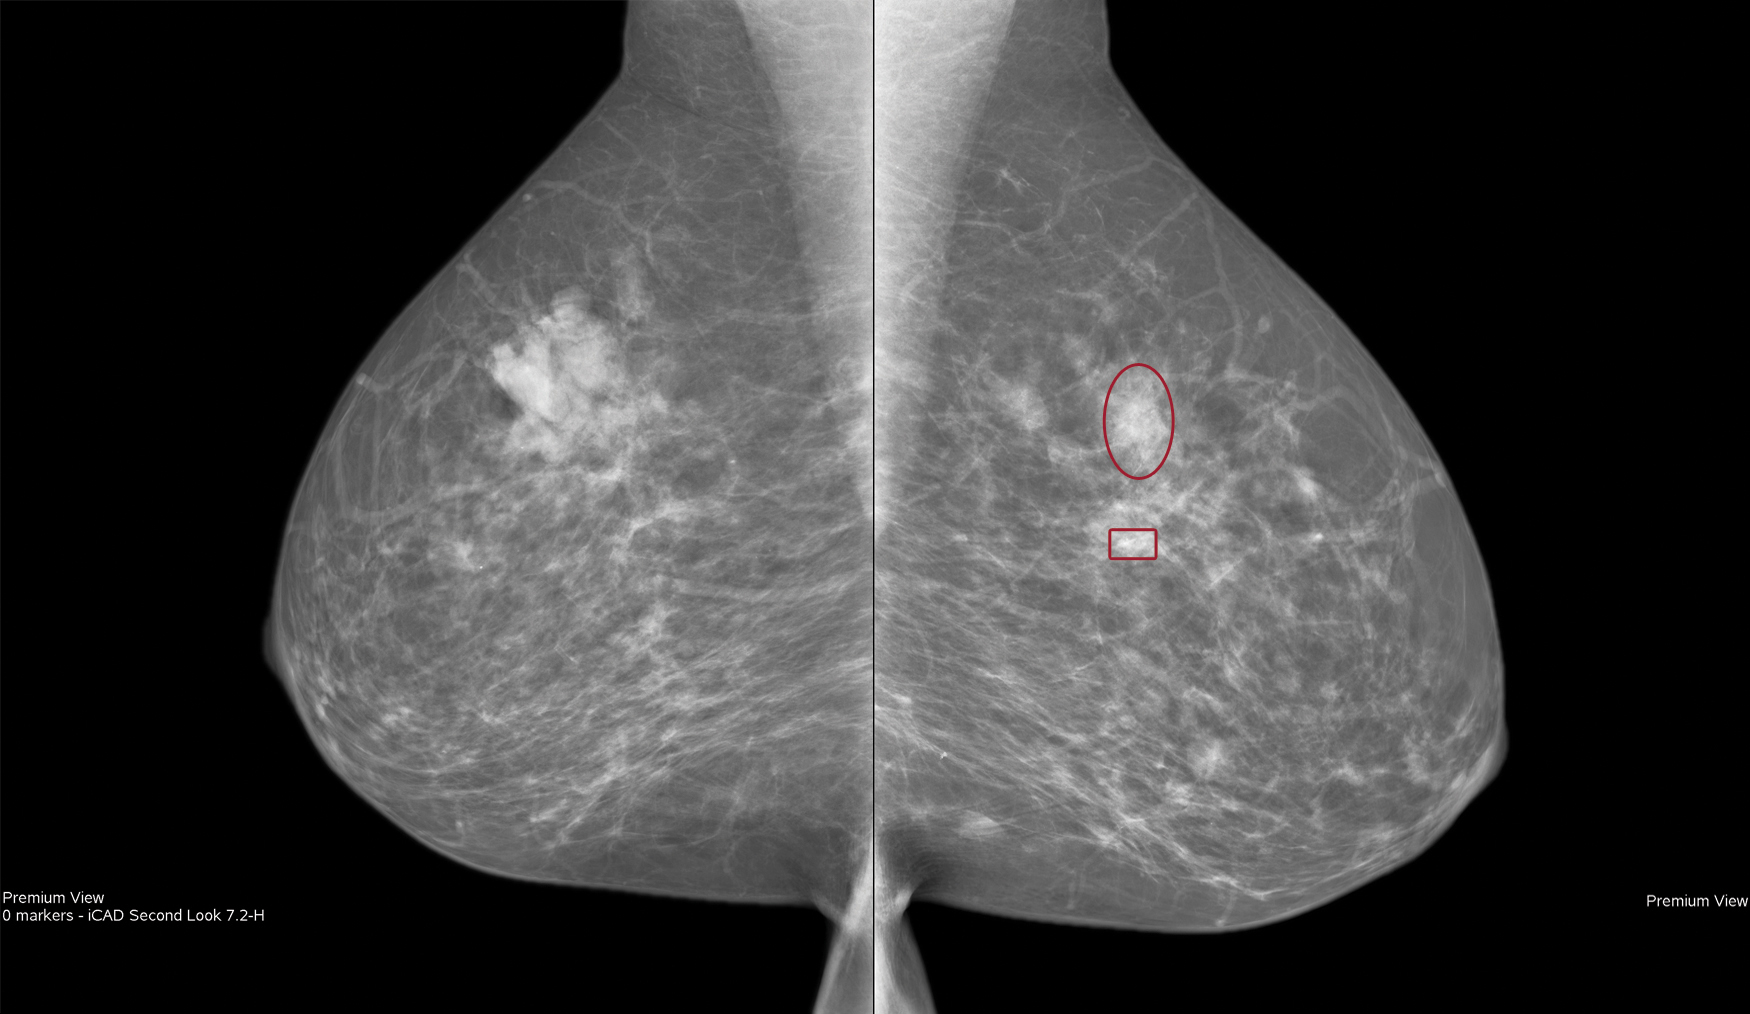 Healthcare Reforms Spur Increase In Screening Mammography